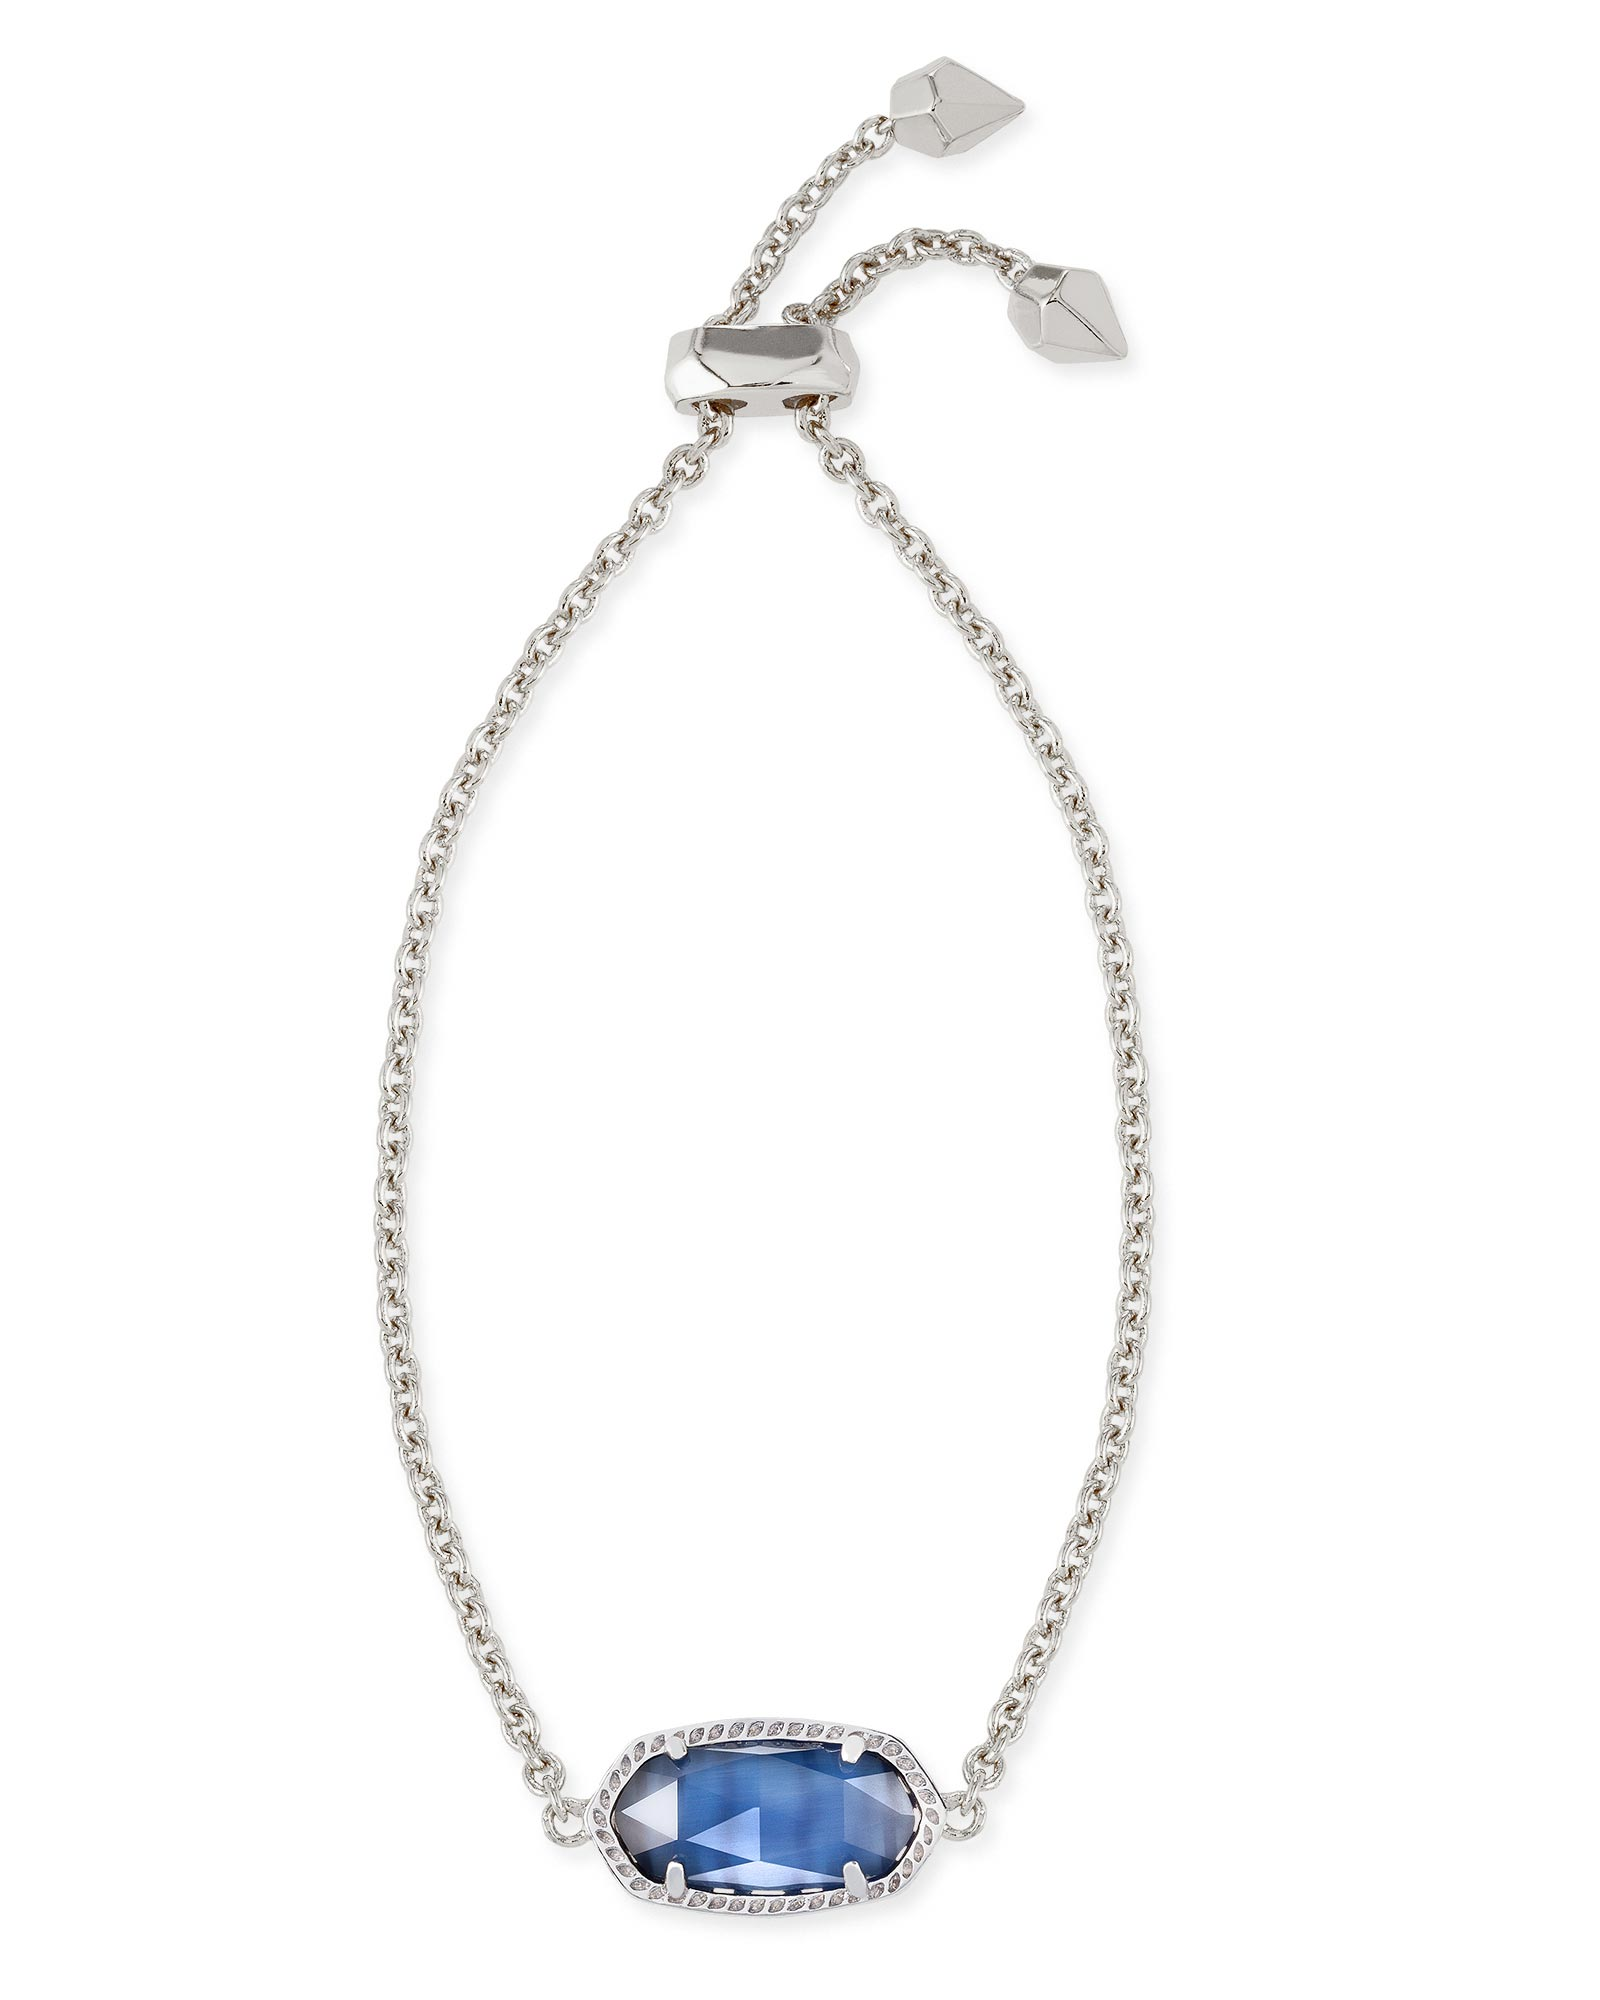 Elaina Silver Adjustable Chain Bracelet in Navy Cat's Eye